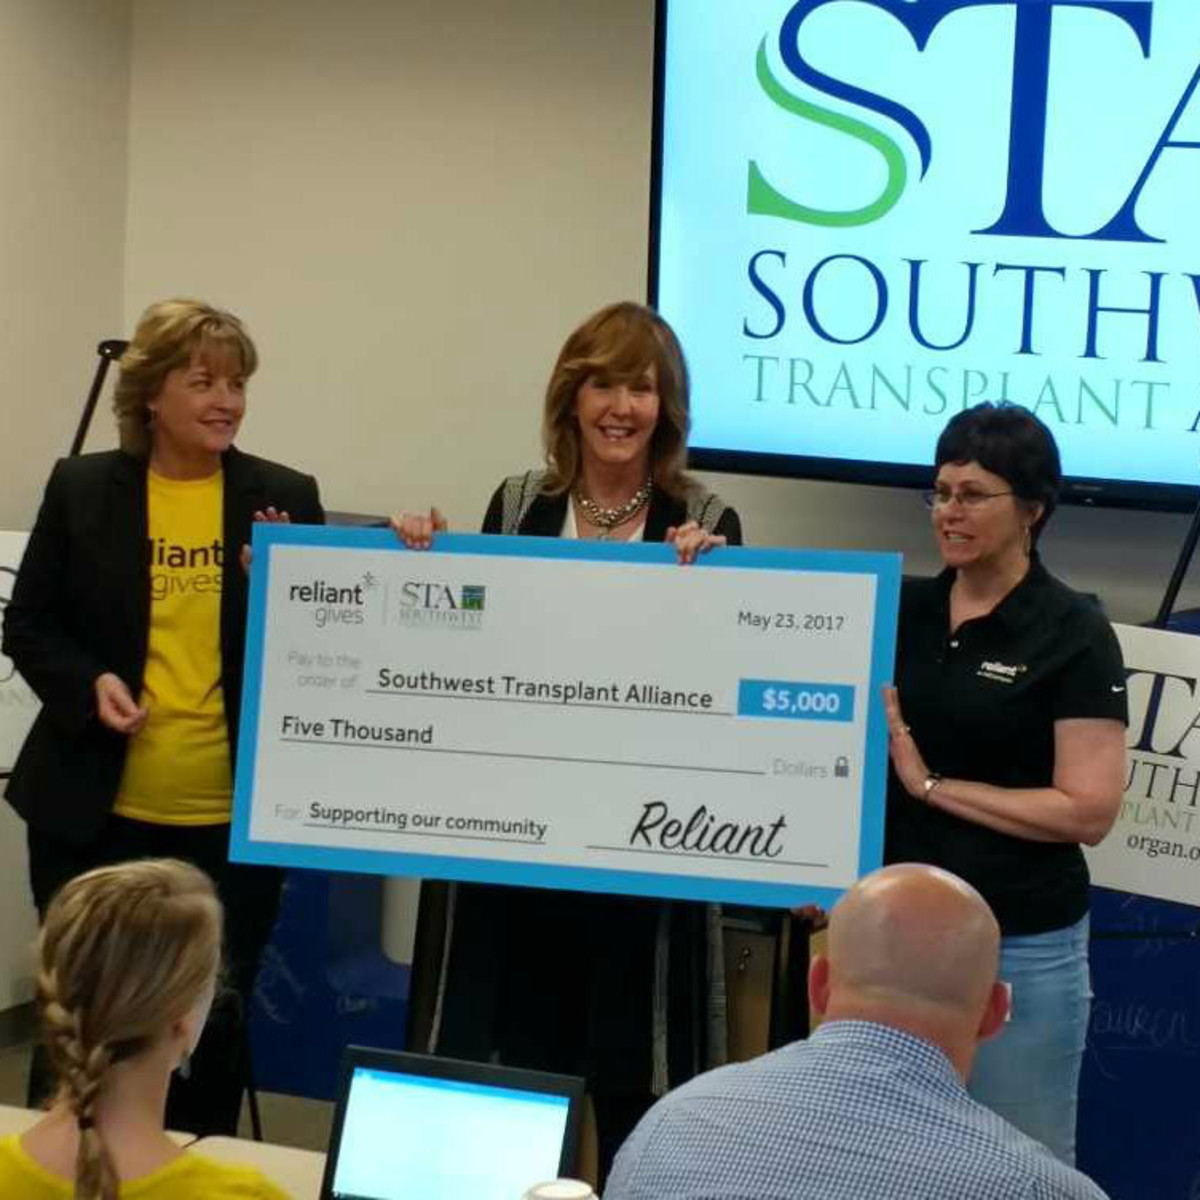 Southwest Transplant Alliance check presentation